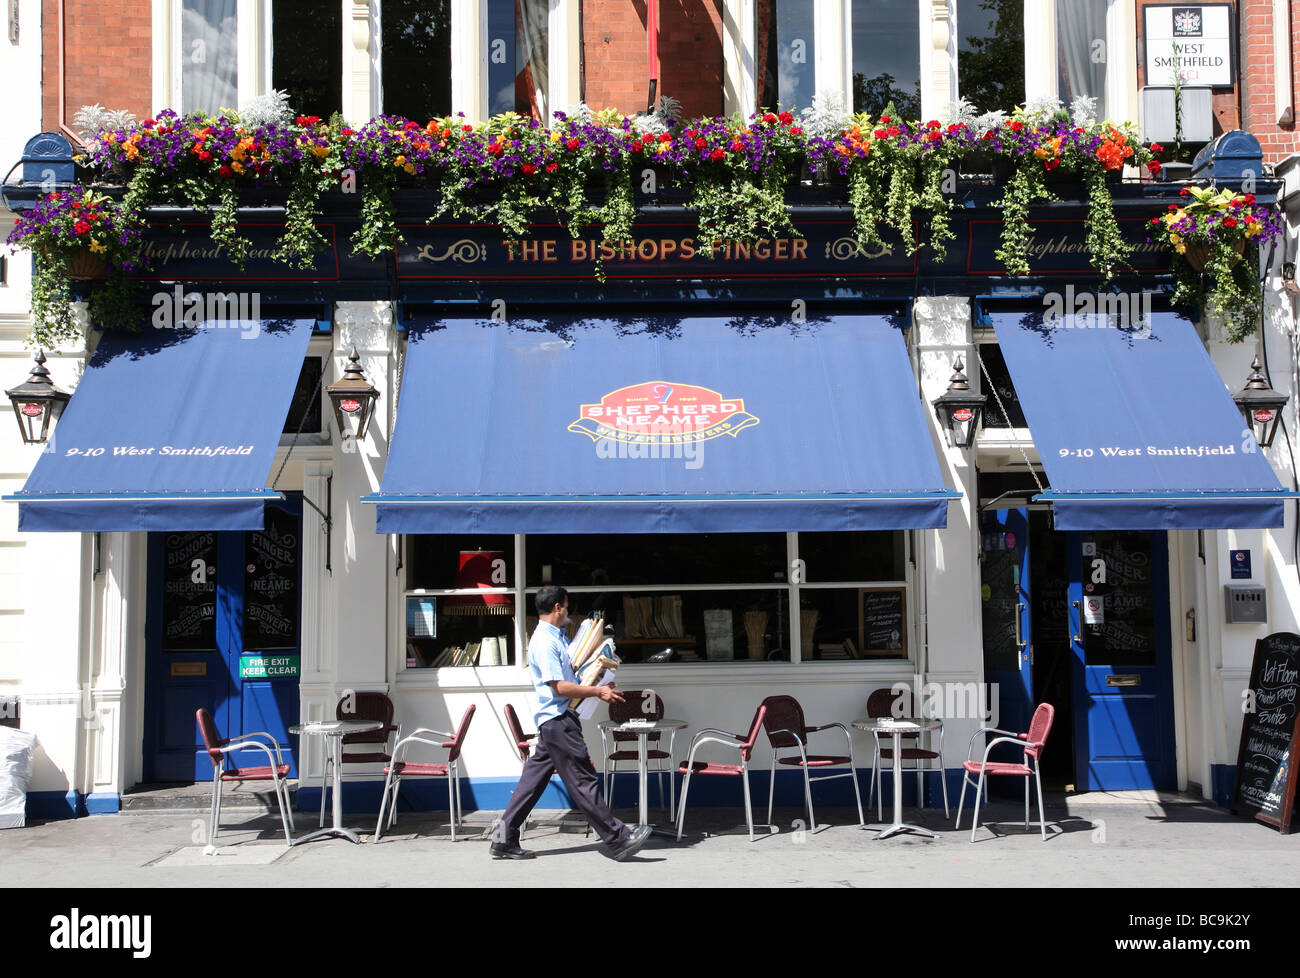 The Bishop's Finger pub, West Smithfield, London - Stock Image